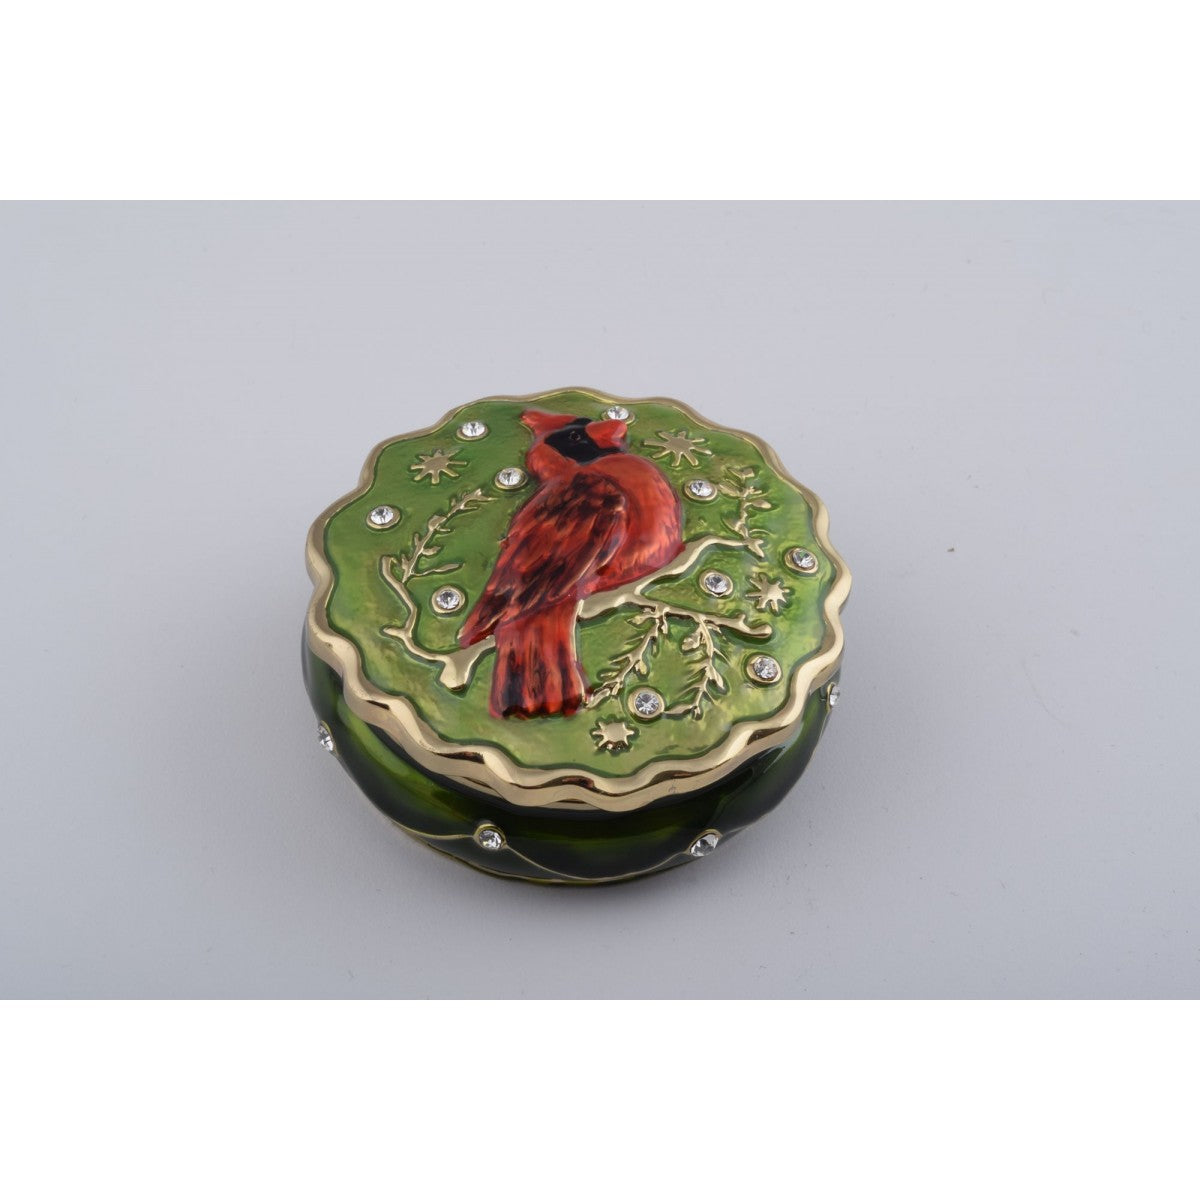 Redbird (Northern Cardinal) Trinket Box by Keren Kopal